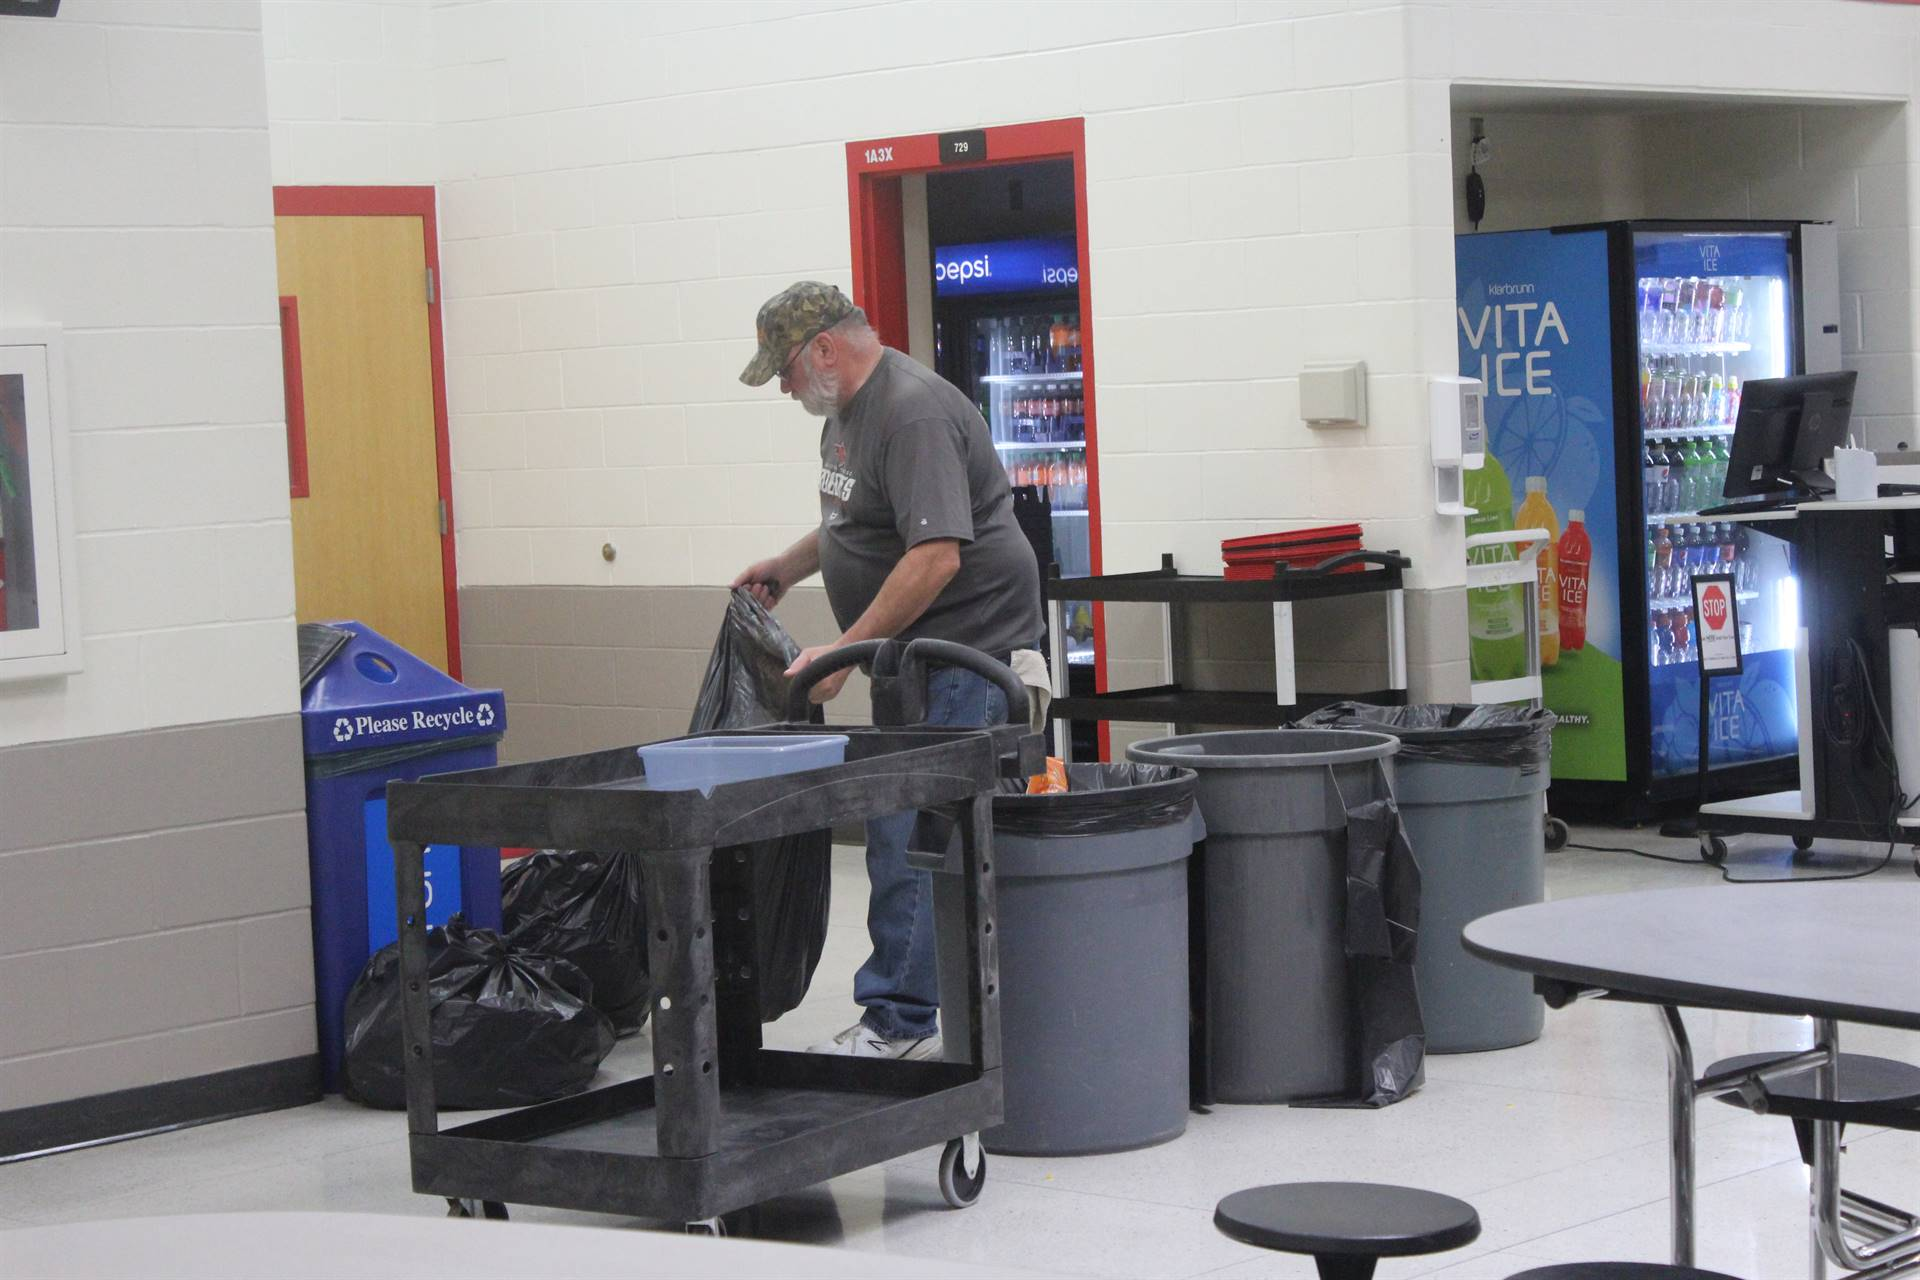 Custodian keeping high school clean